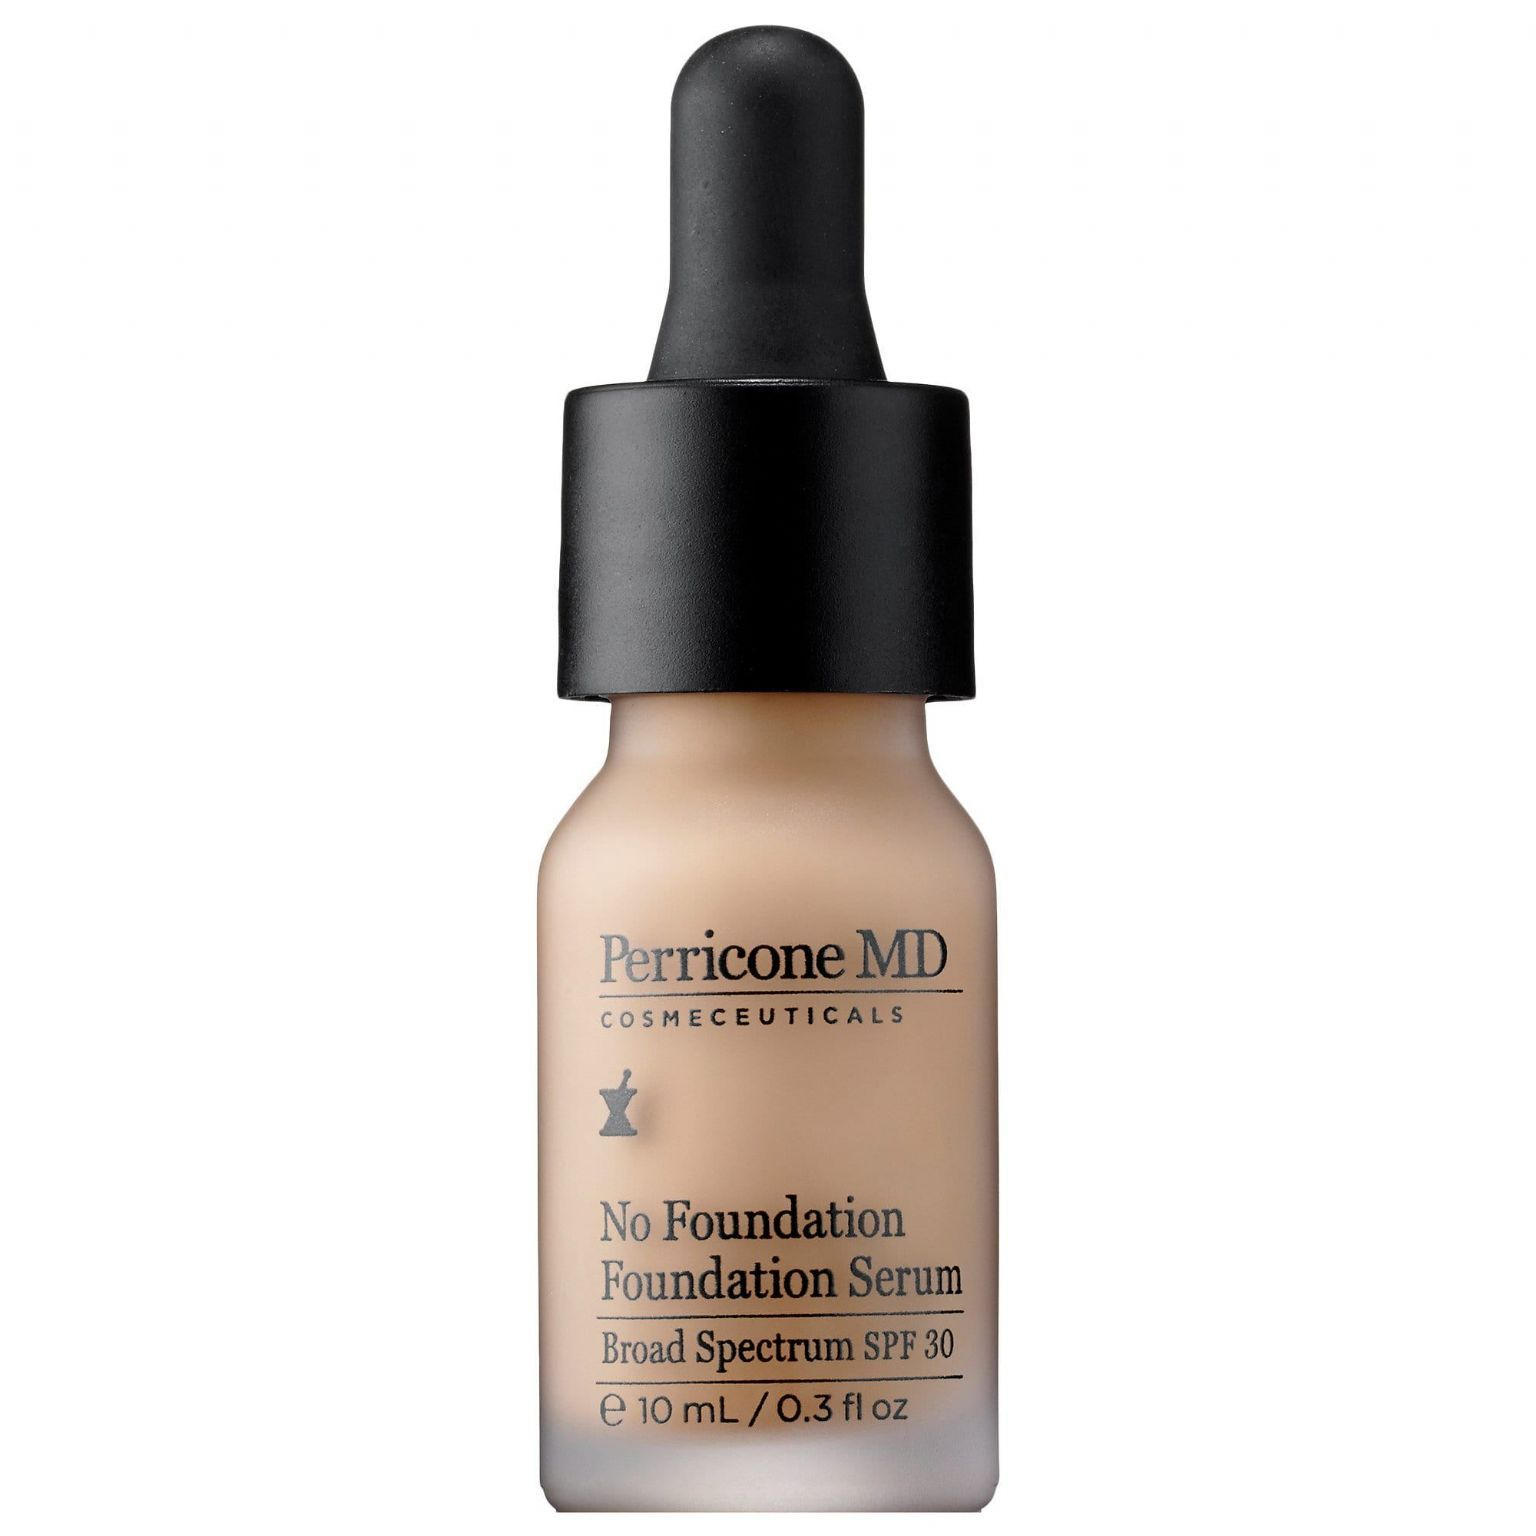 MD No Foundation Foundation Serum